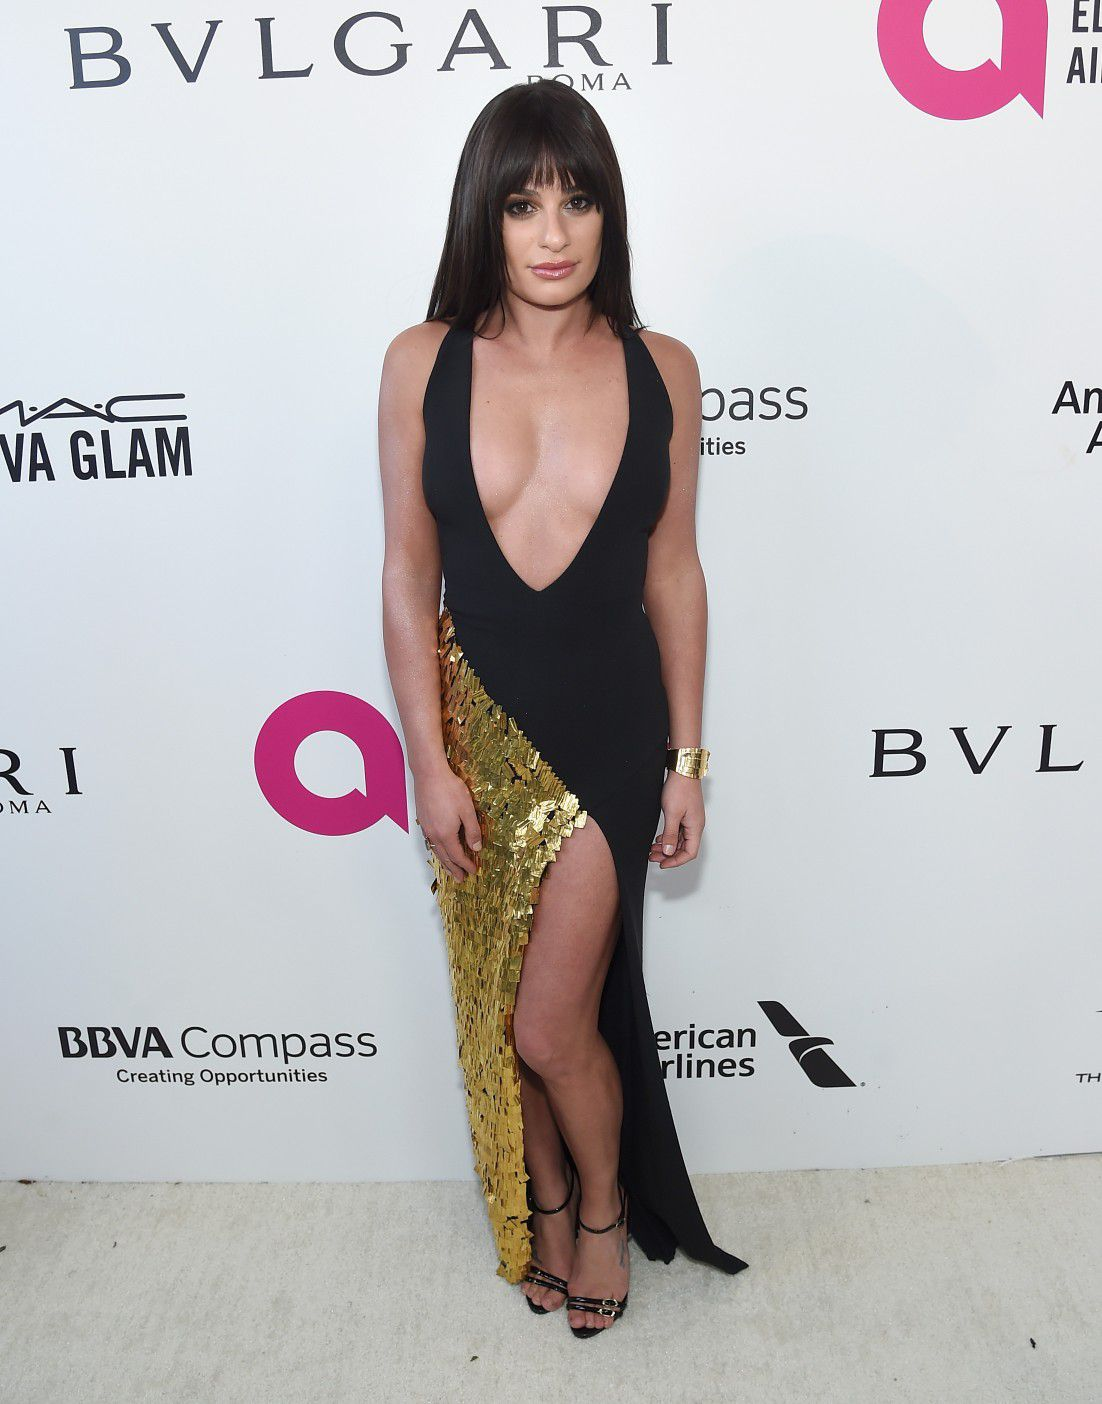 lea-michele-nip-slip-and-cleavage-at-elton-johns-aids-foundation-oscars-viewing-party-8552